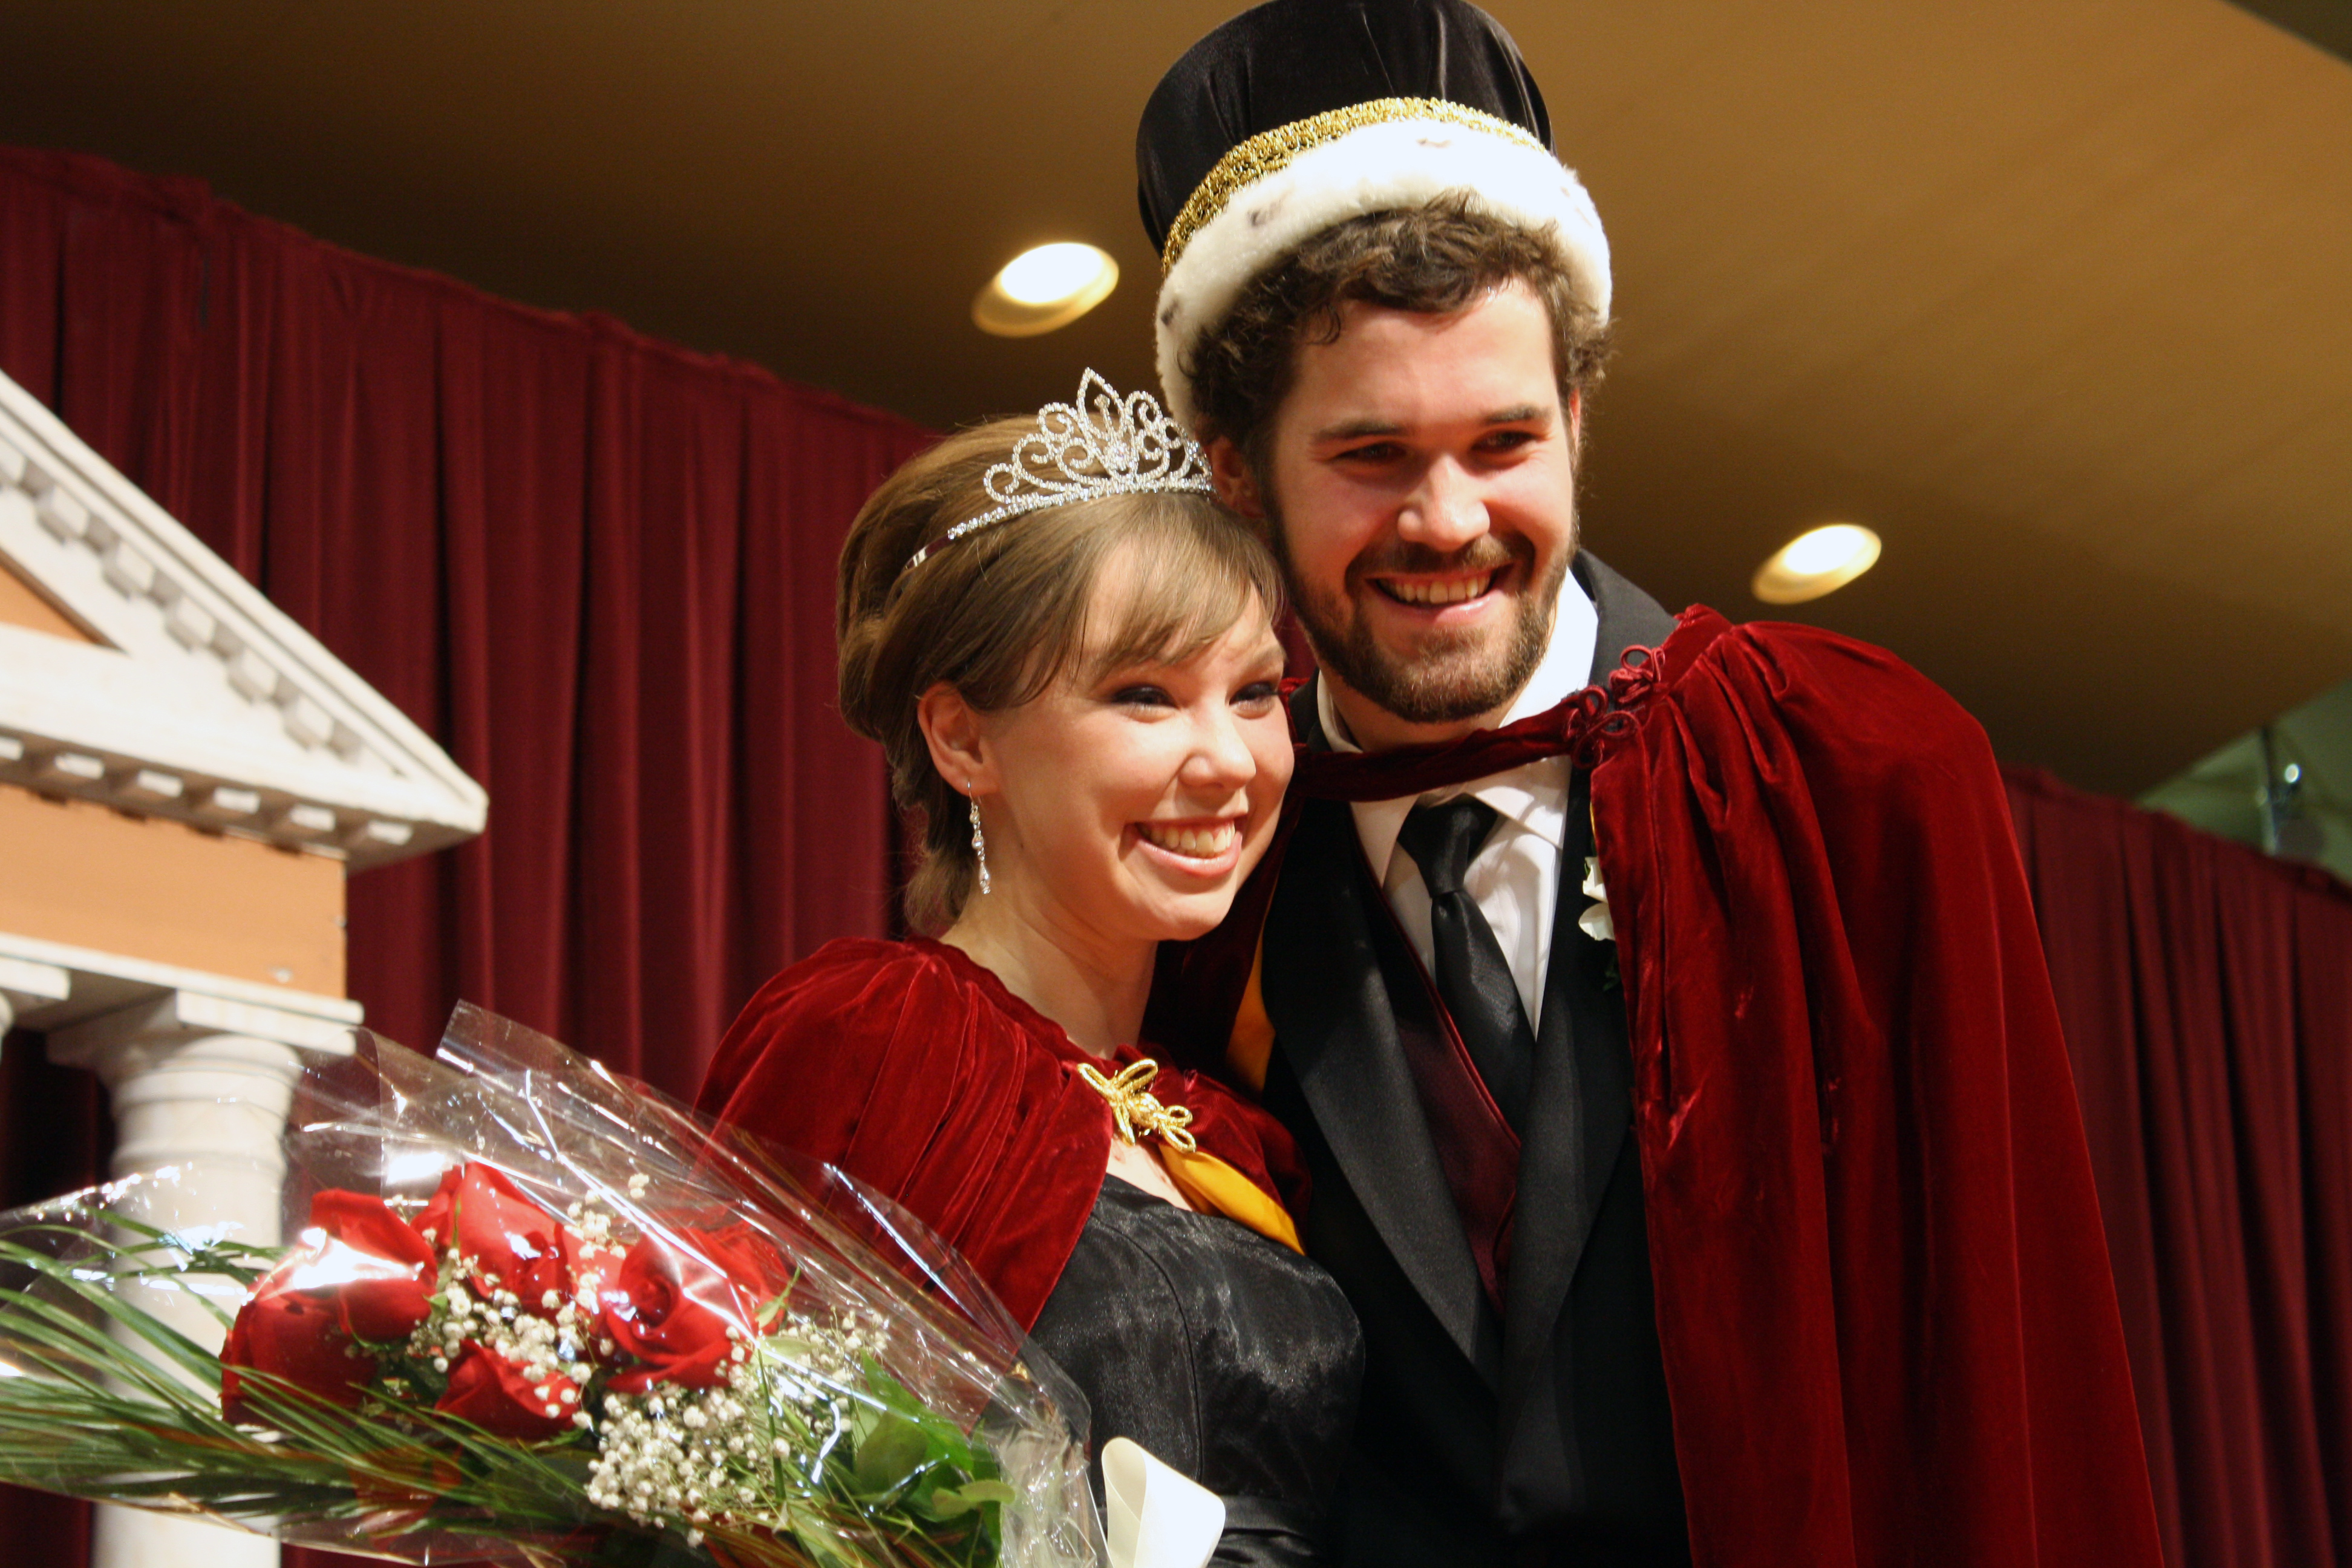 Photo by Rachel Torgerson. Seniors Elise Tweten and Skyler Vilt were crowned Homecoming Queen and King at the coronation ceremony on Oct. 11.